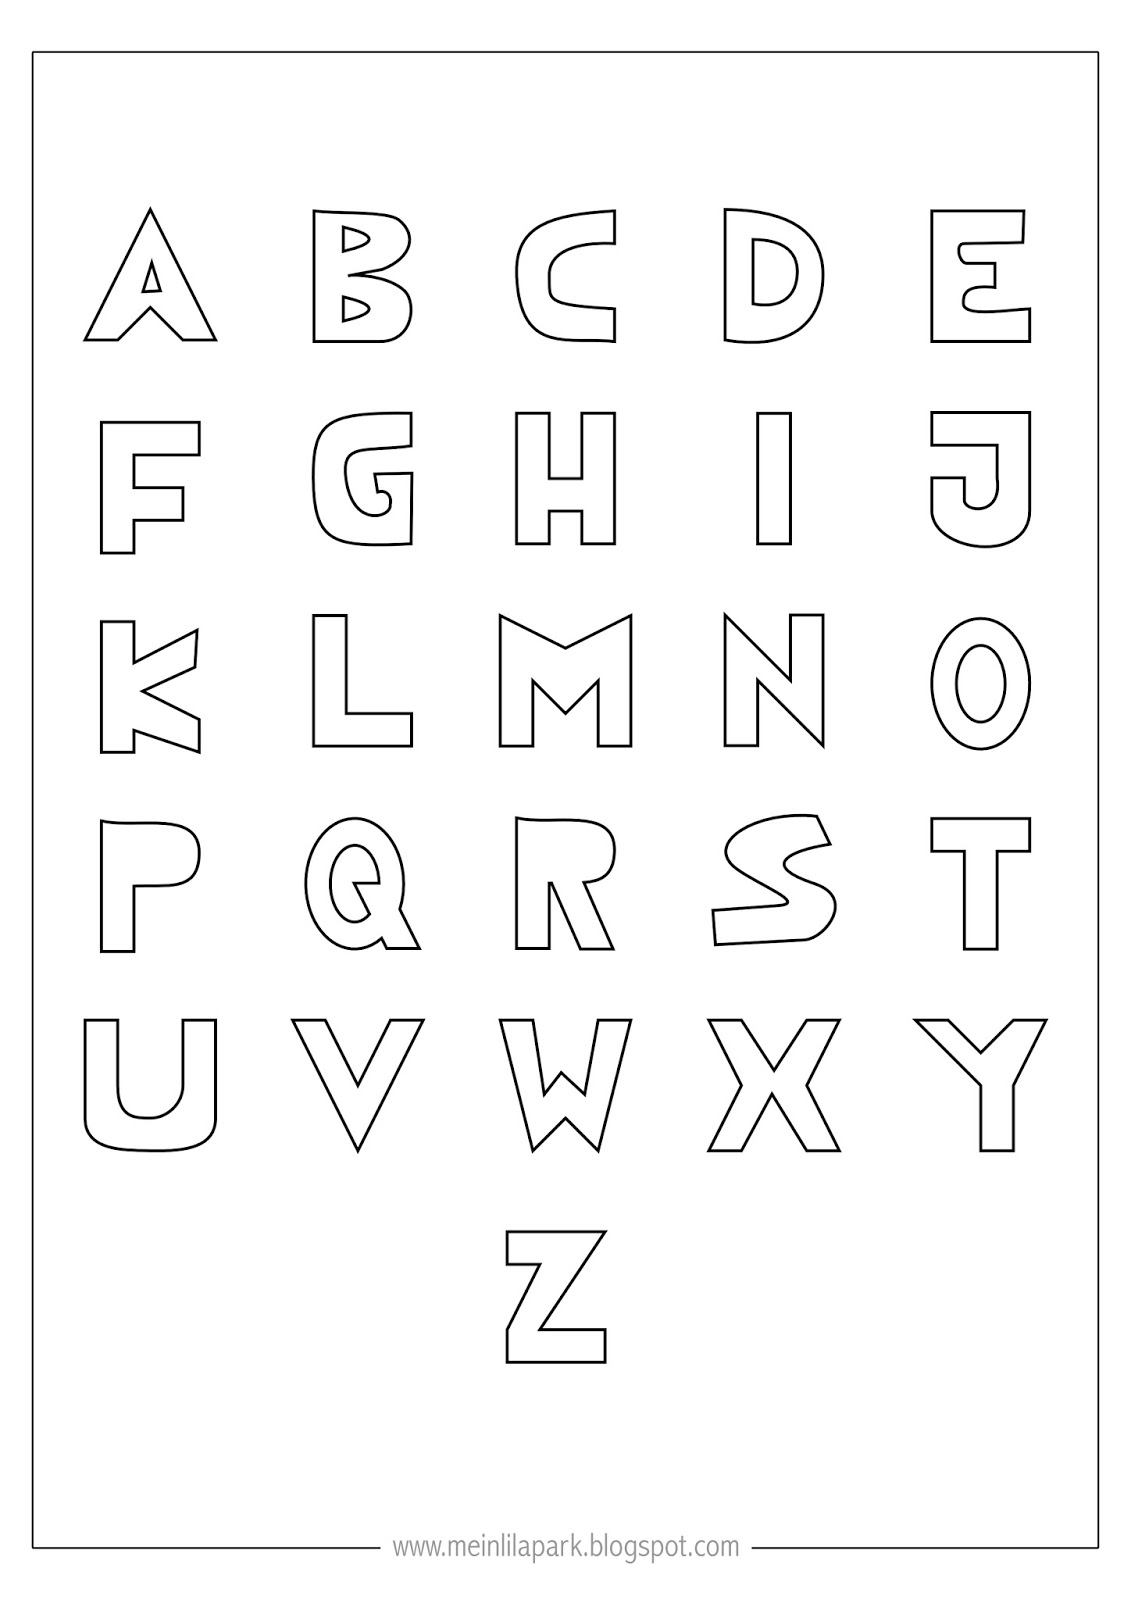 Agile image for abc letters printable